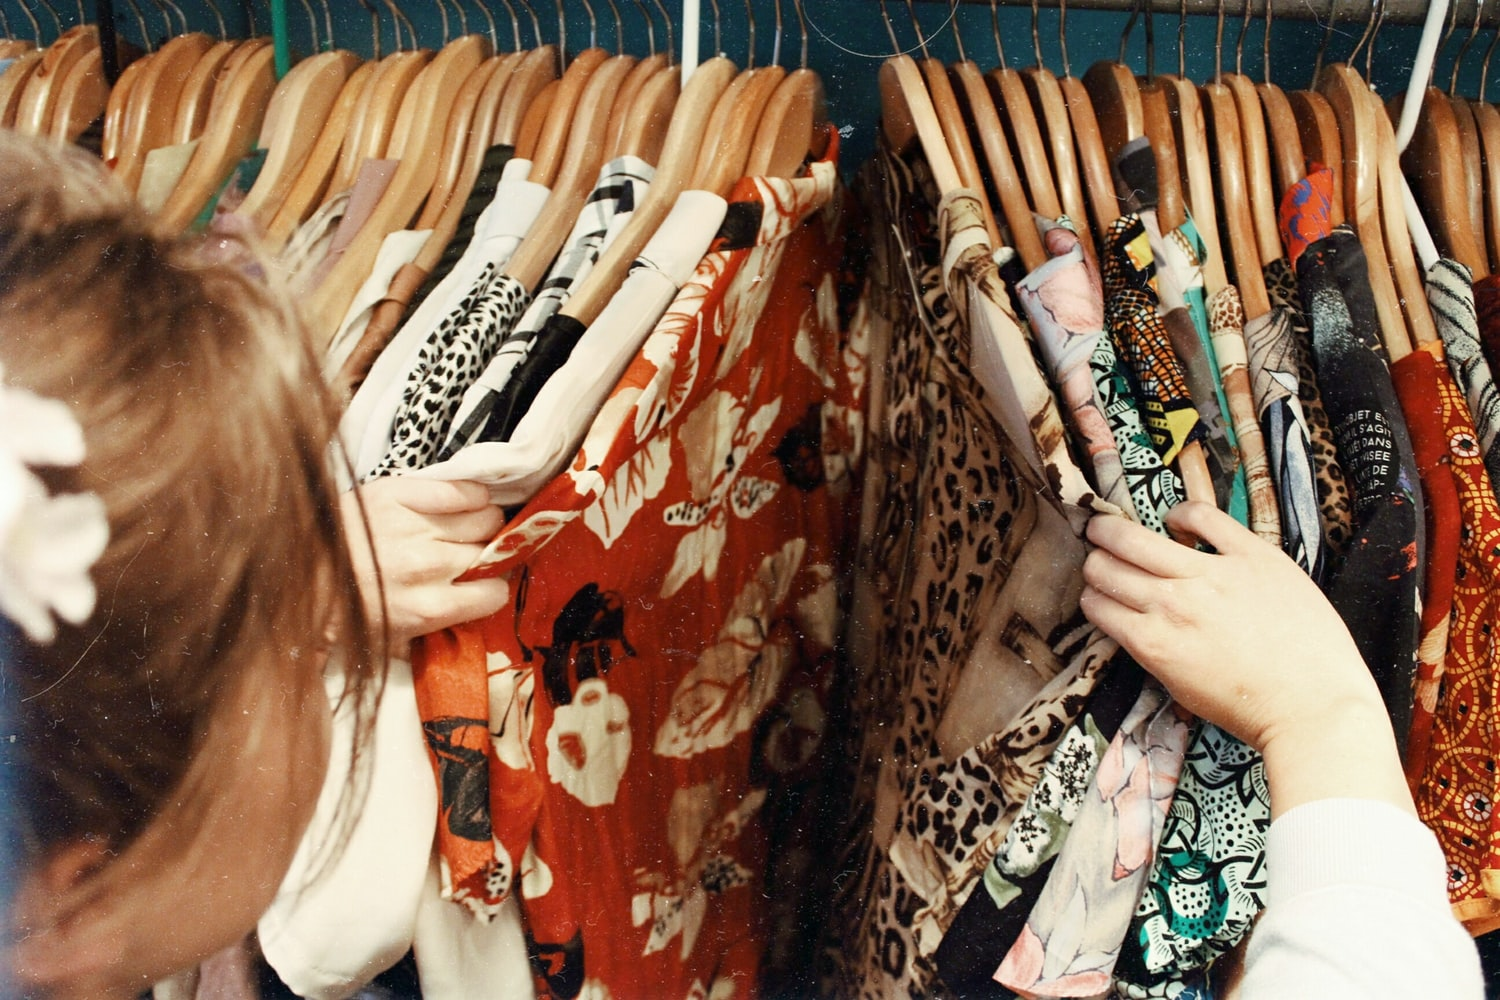 Person looking at clothes hung on a rack